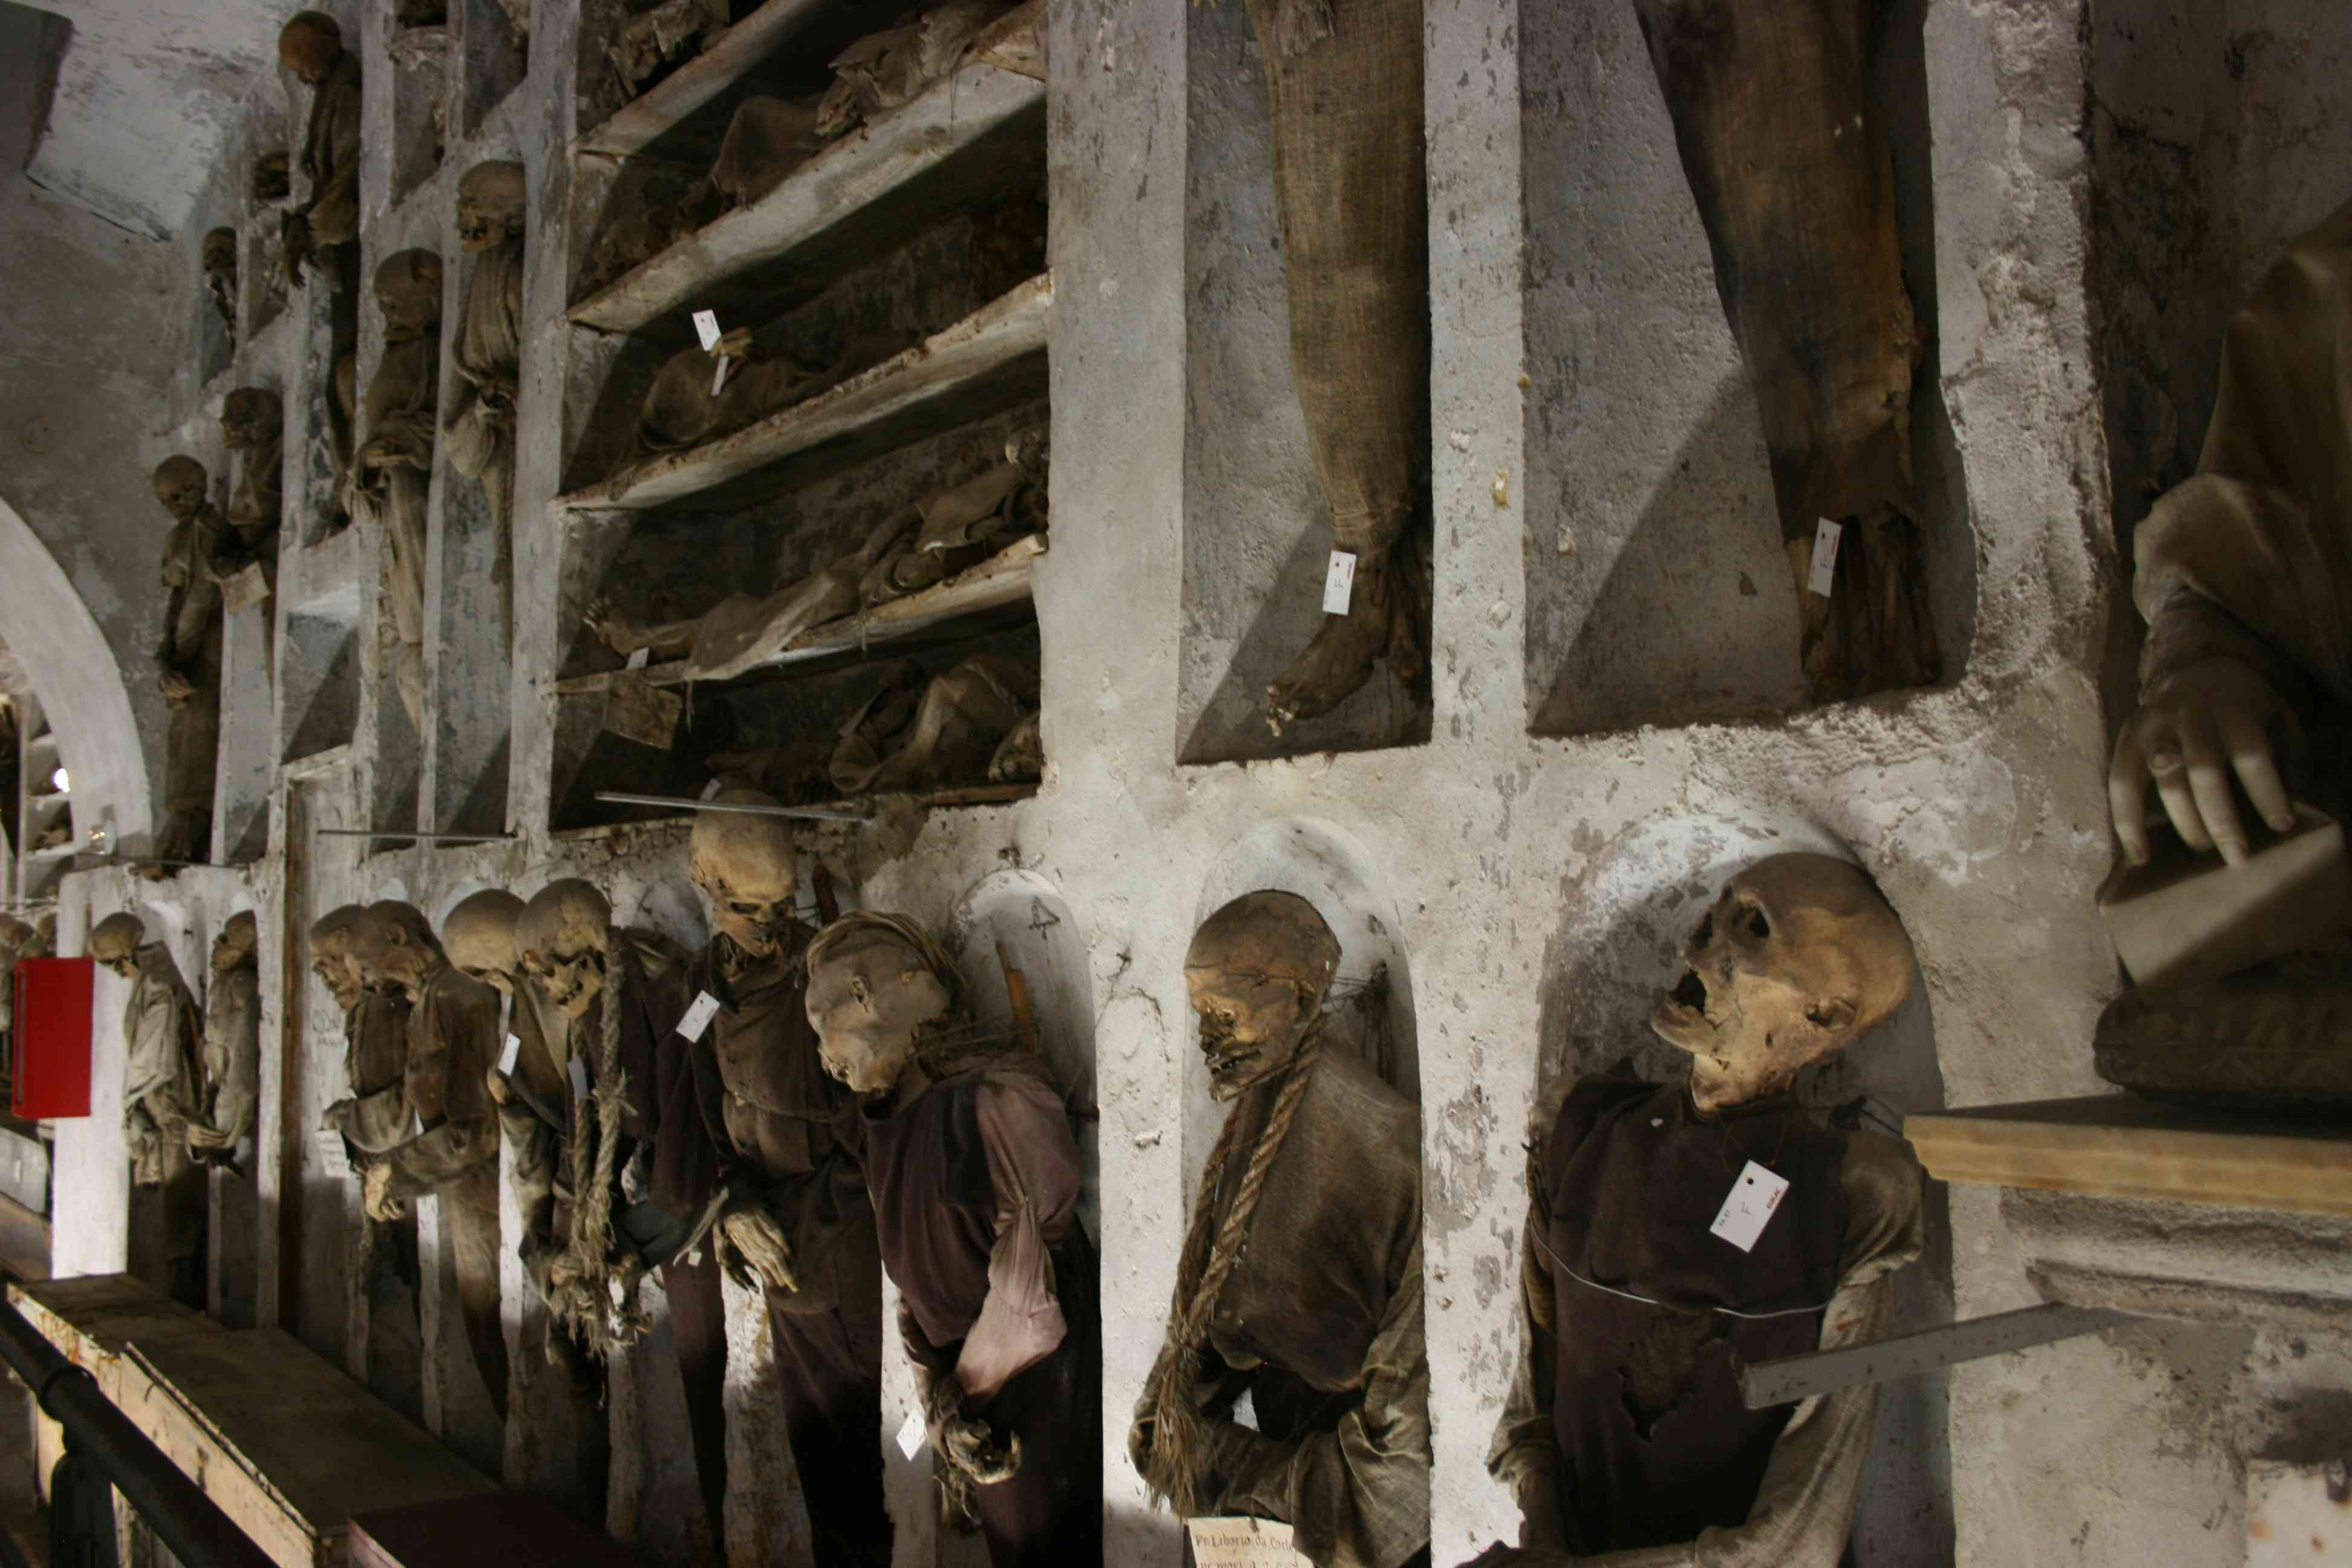 Mummies displayed along a wall in the Capuchin Catacombs in Palermo Italy